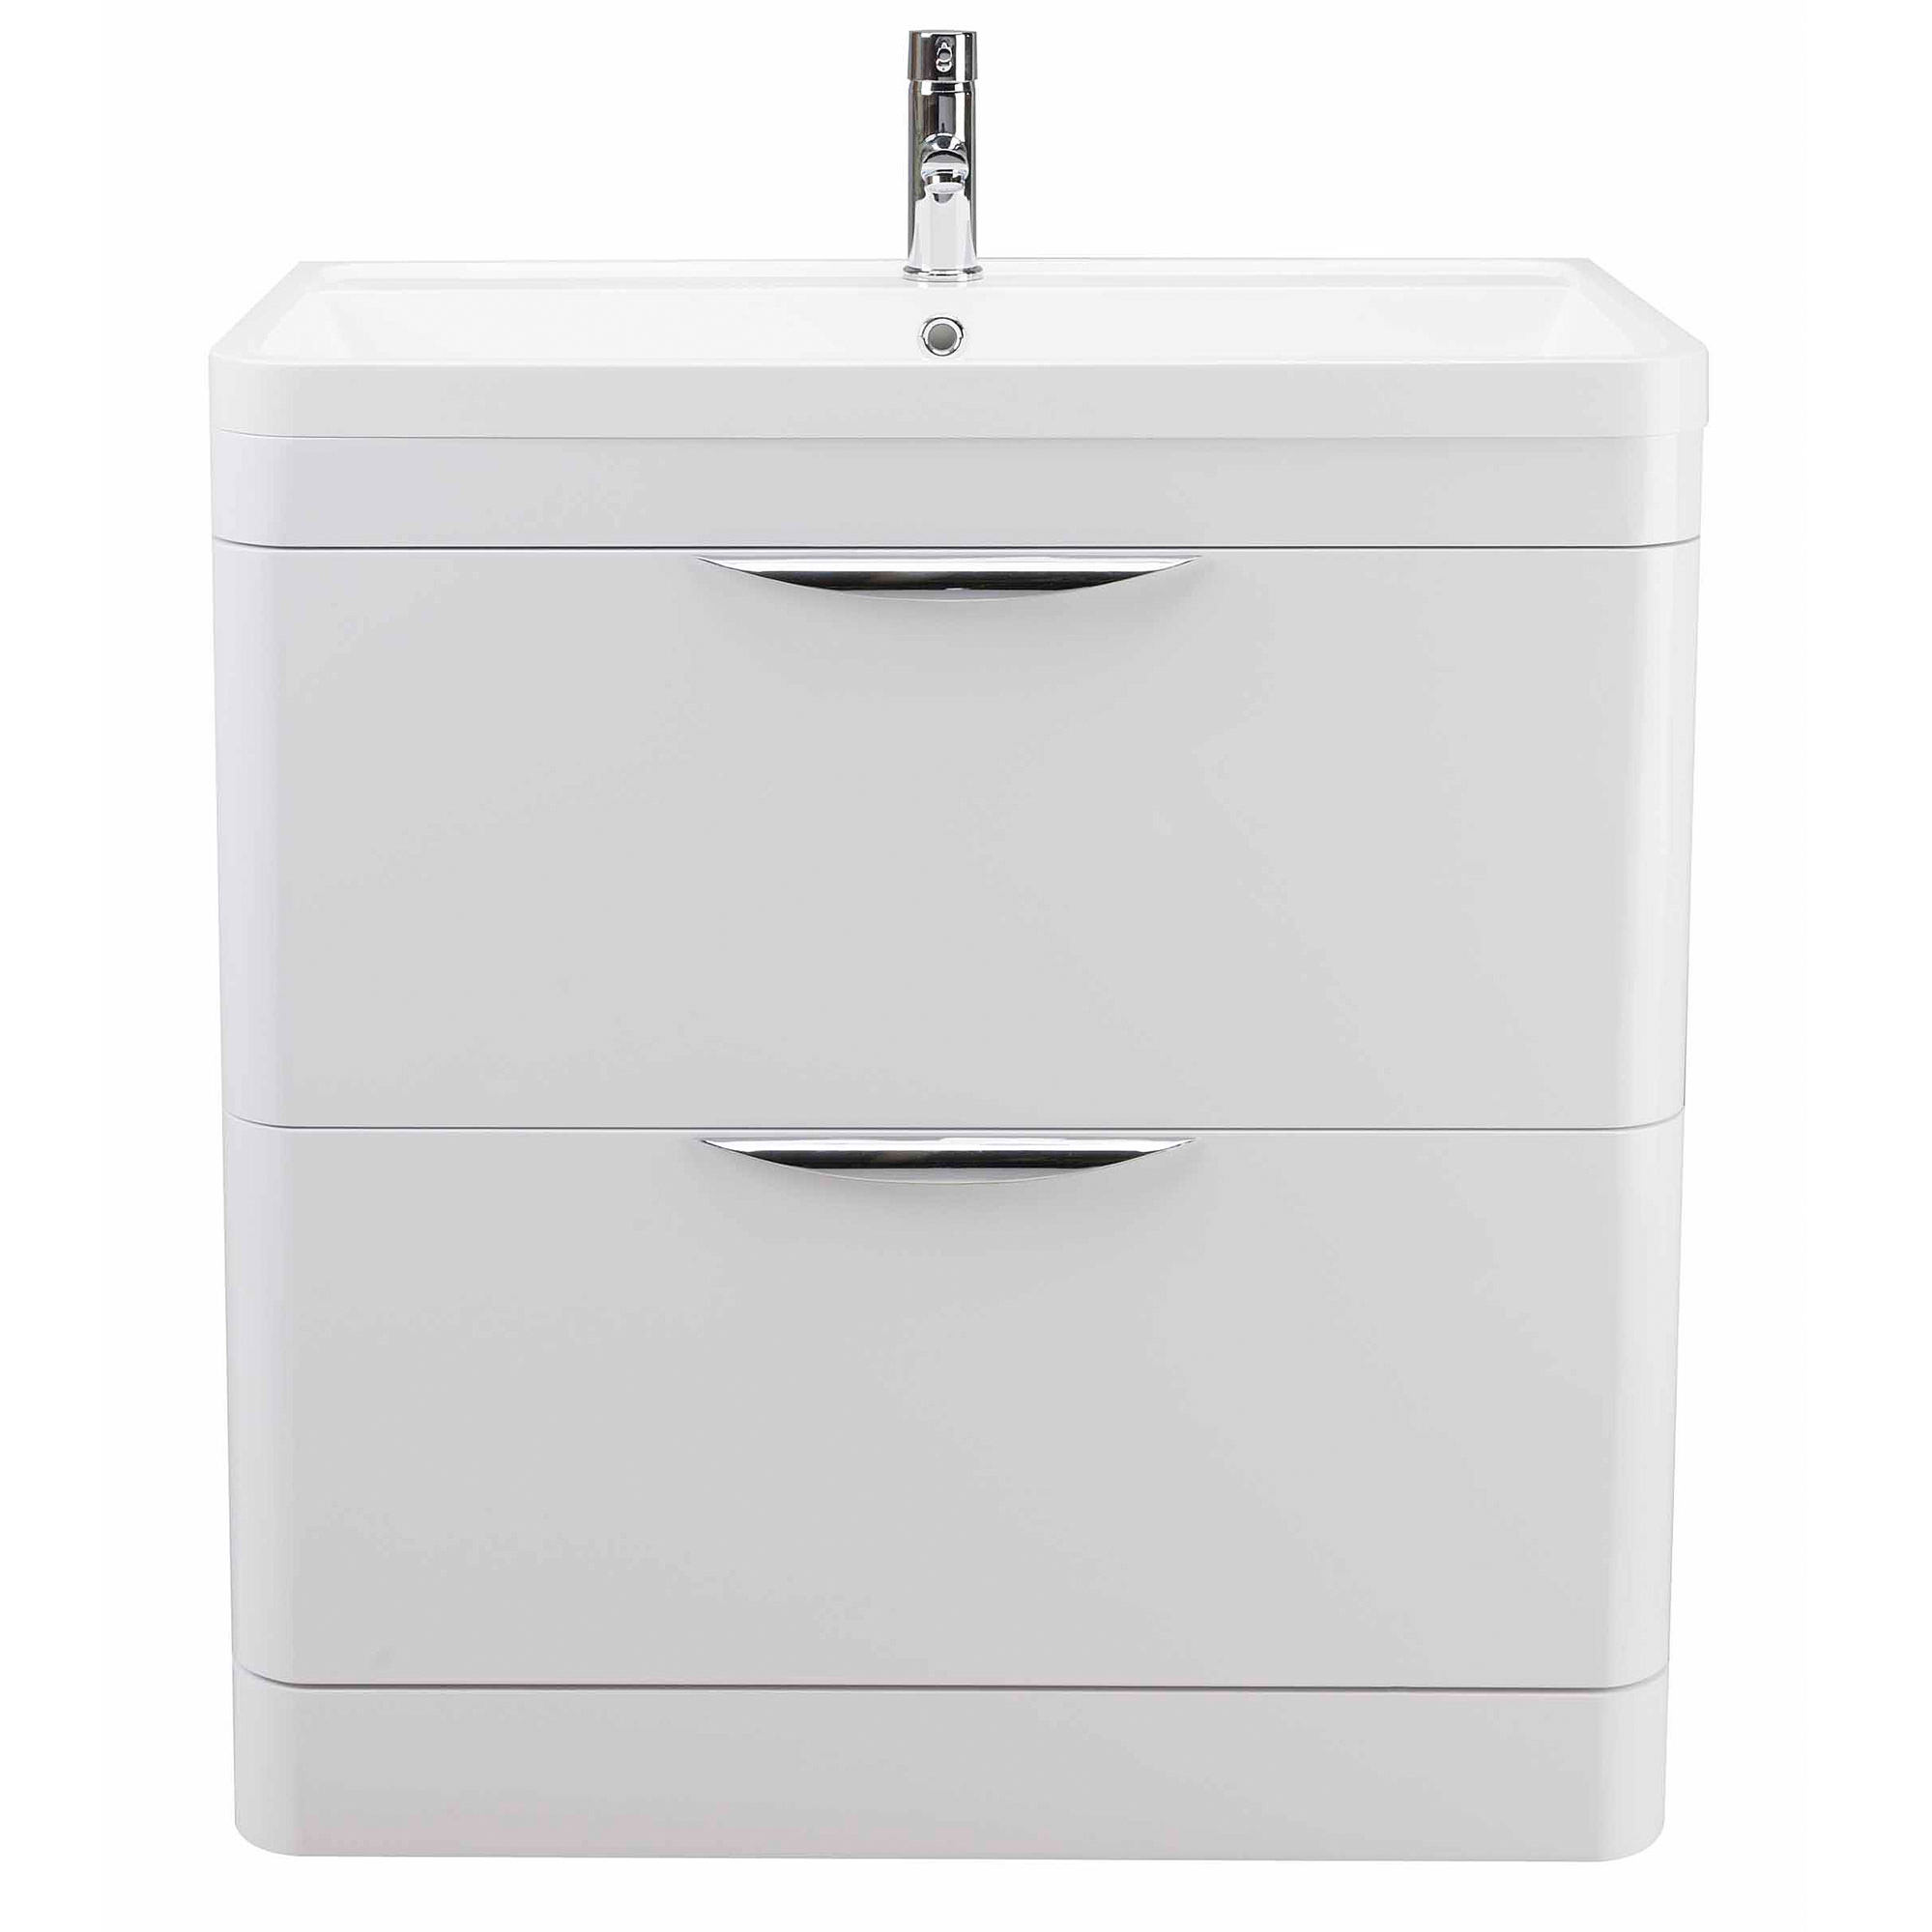 Lauren parade 800mm floor standing 2 drawer cabinet and basin for Bathroom cabinets 800mm high